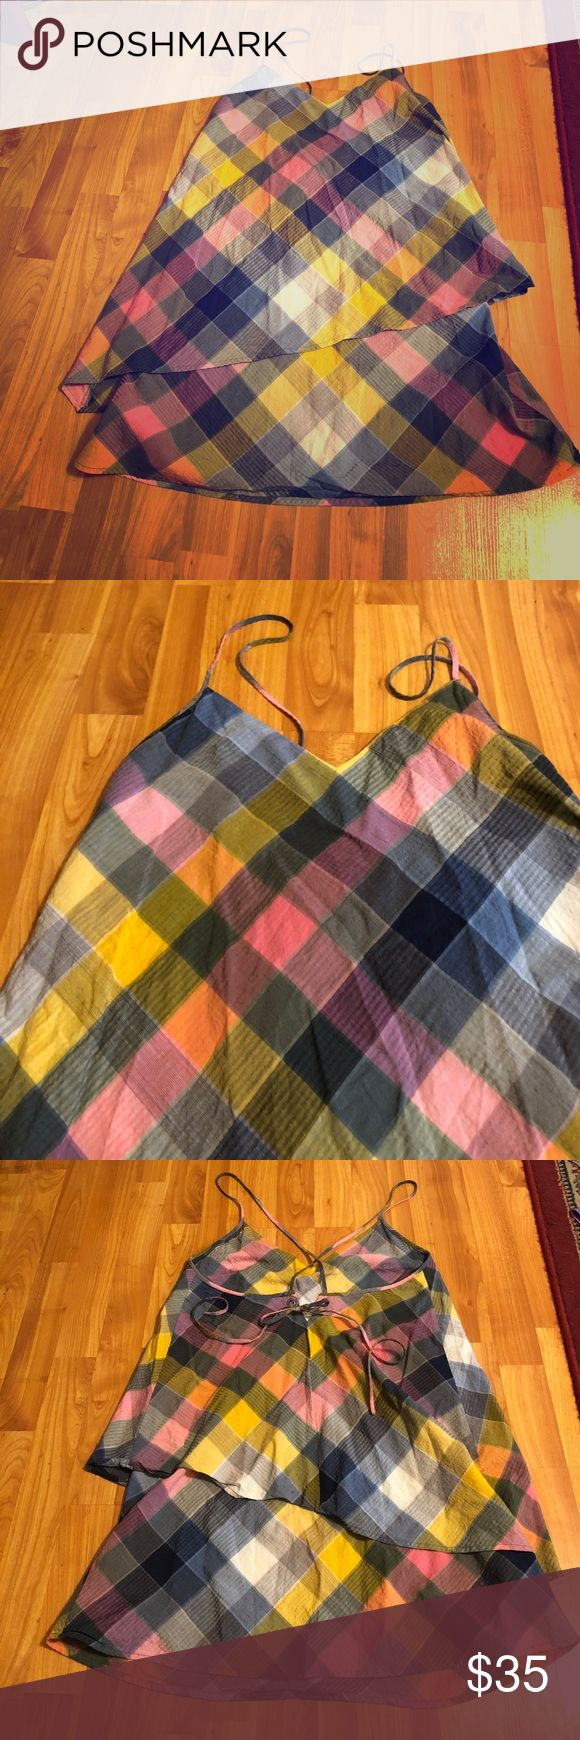 Patagonia plaid dress Super cute tiered Patagonia dress! Size 4. Perfect condition. Comes from a smoke free, dog loving home. Patagonia Dresses